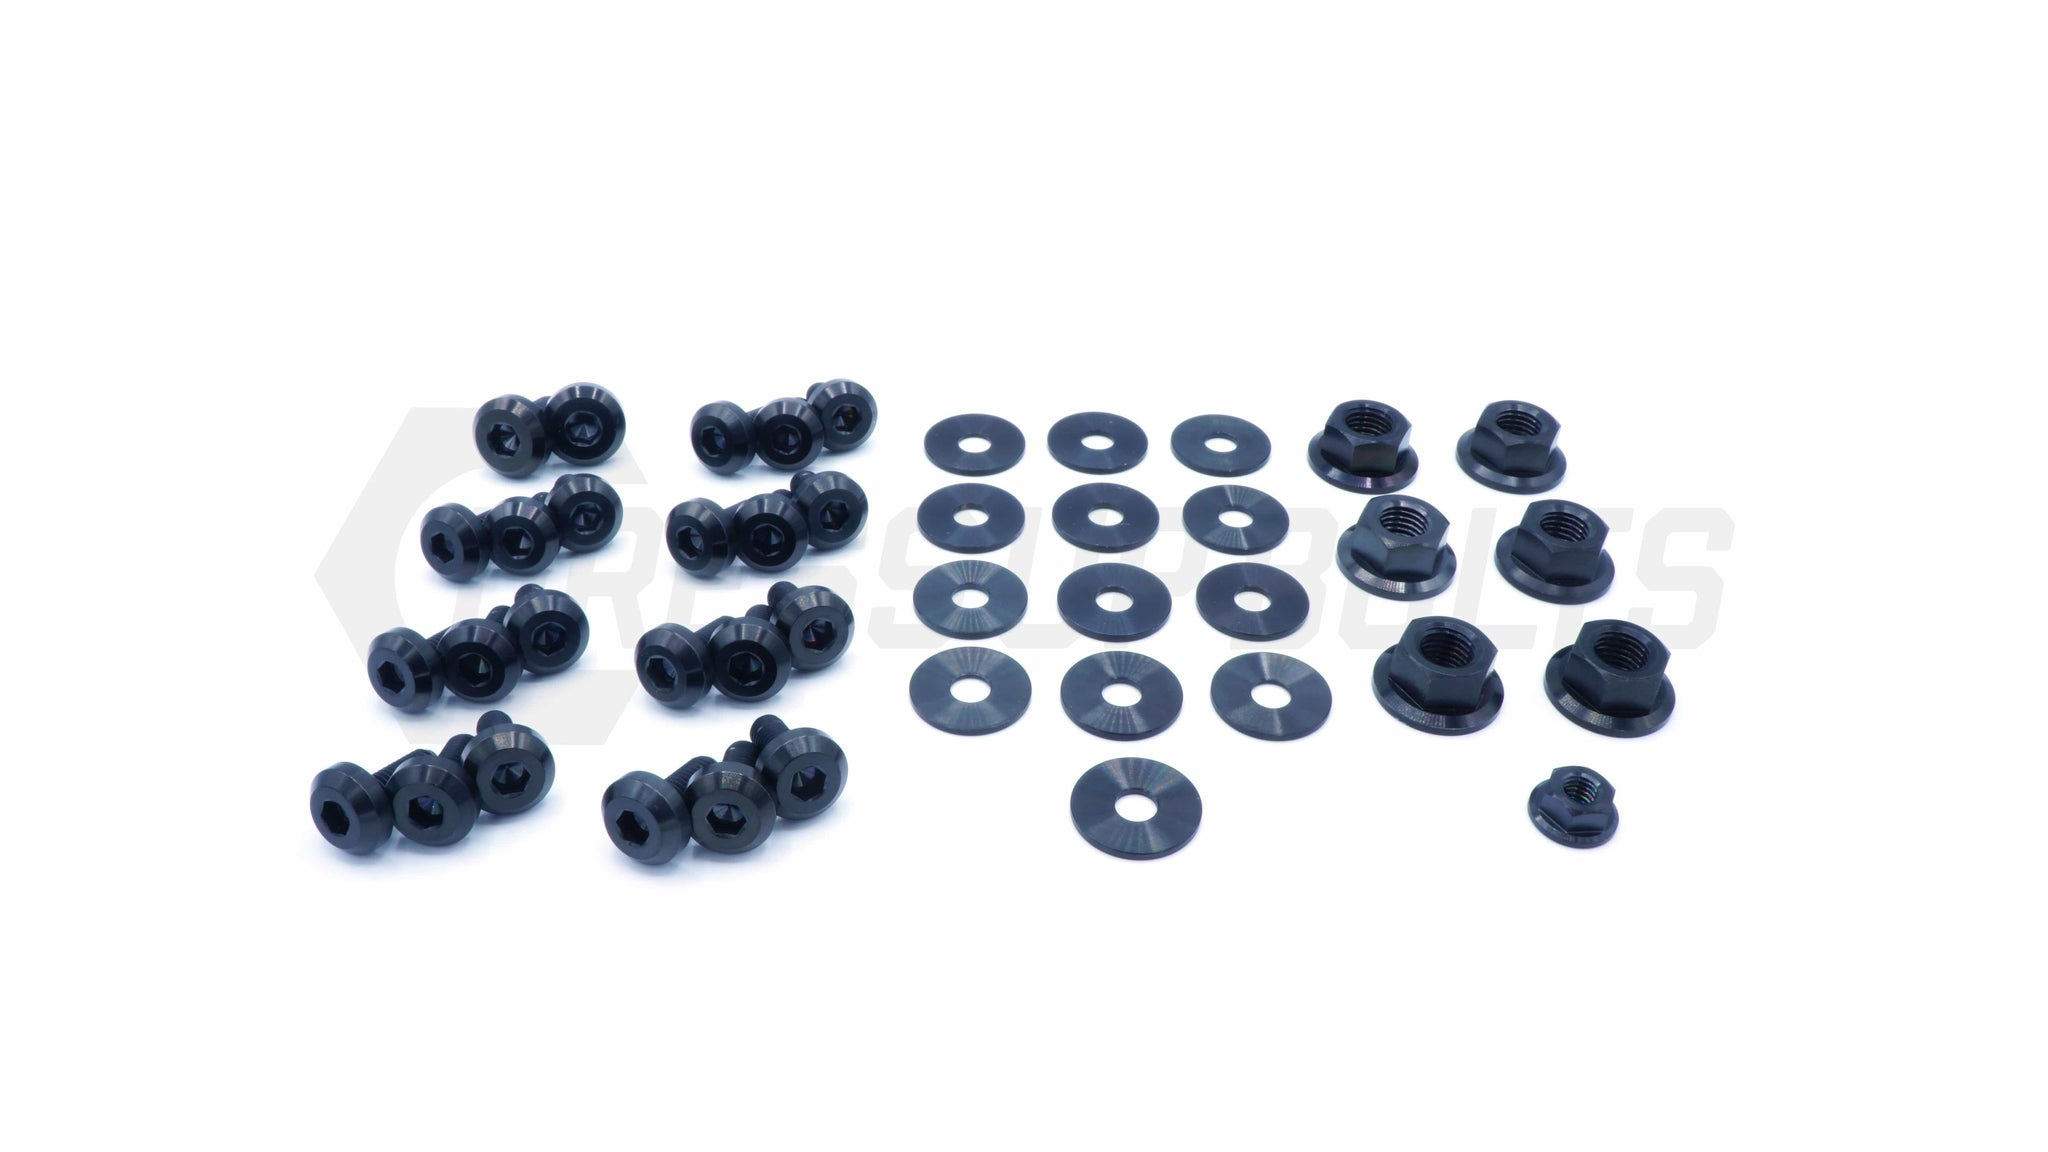 Toyota Supra (1993-2002) MKIV Titanium Dress Up Bolts Engine Bay Kit - DressUpBolts.com